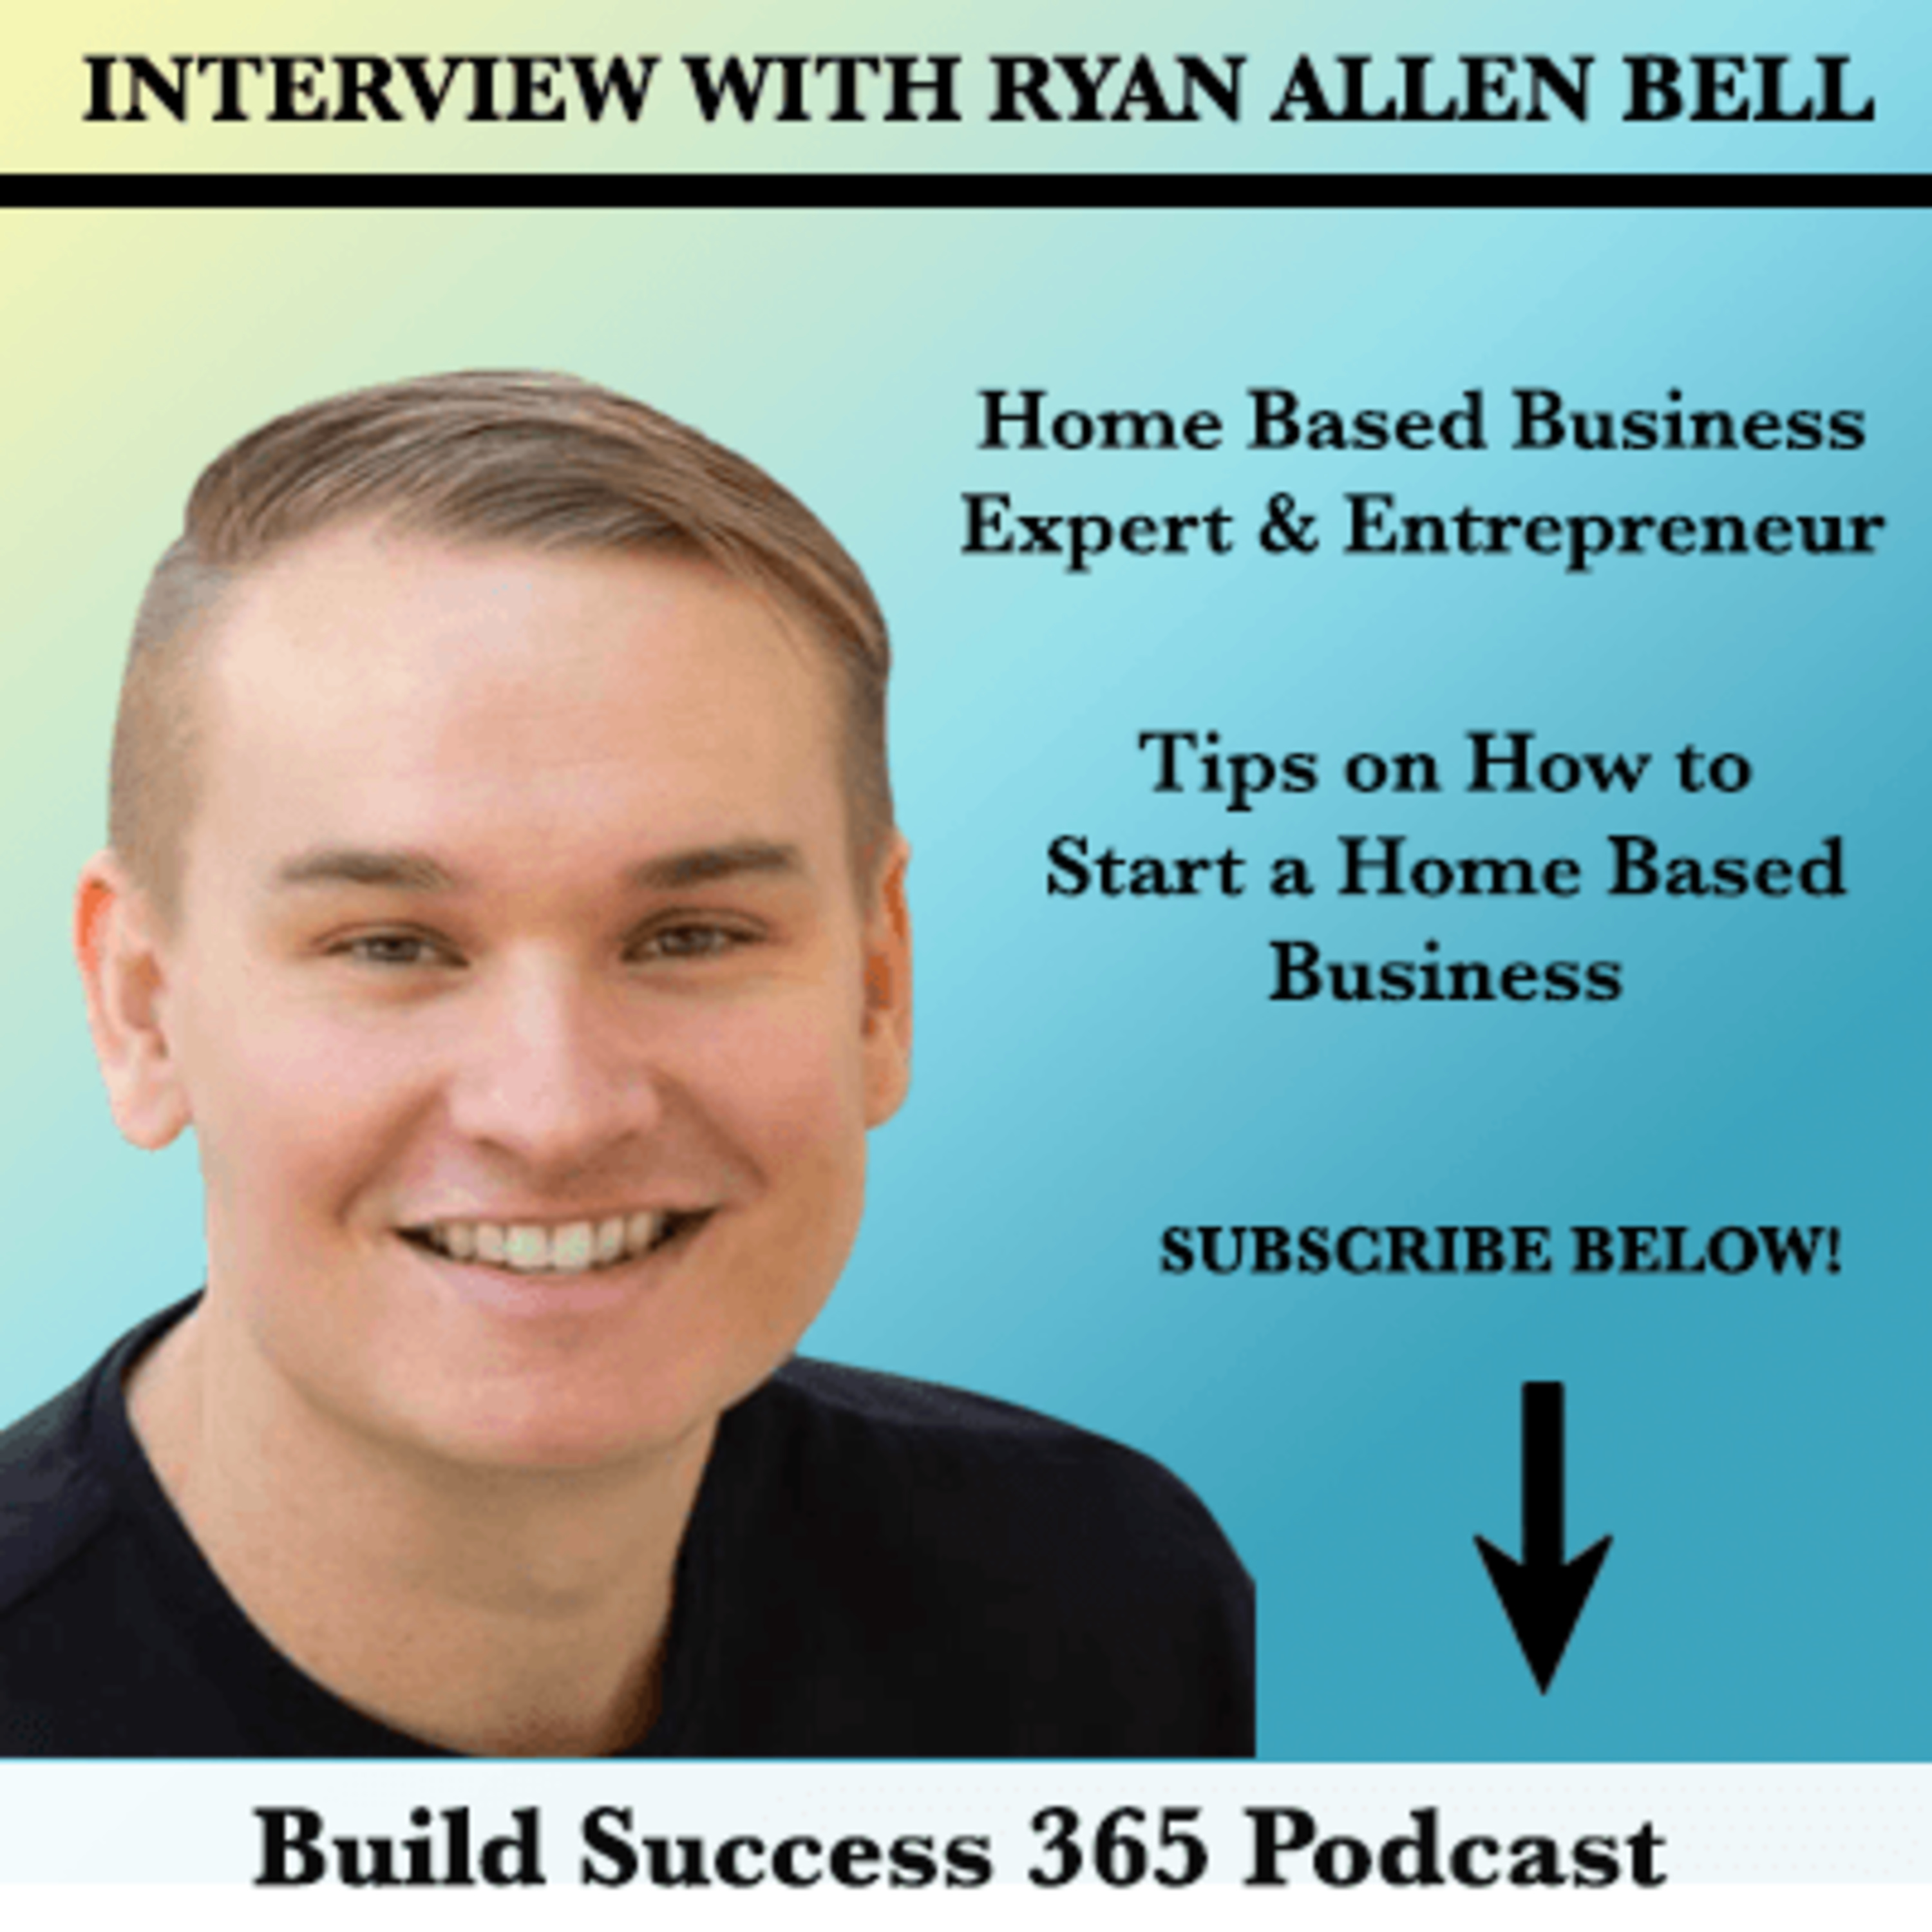 Interview With Ryan Allen Bell - How to Start a Home Based Business